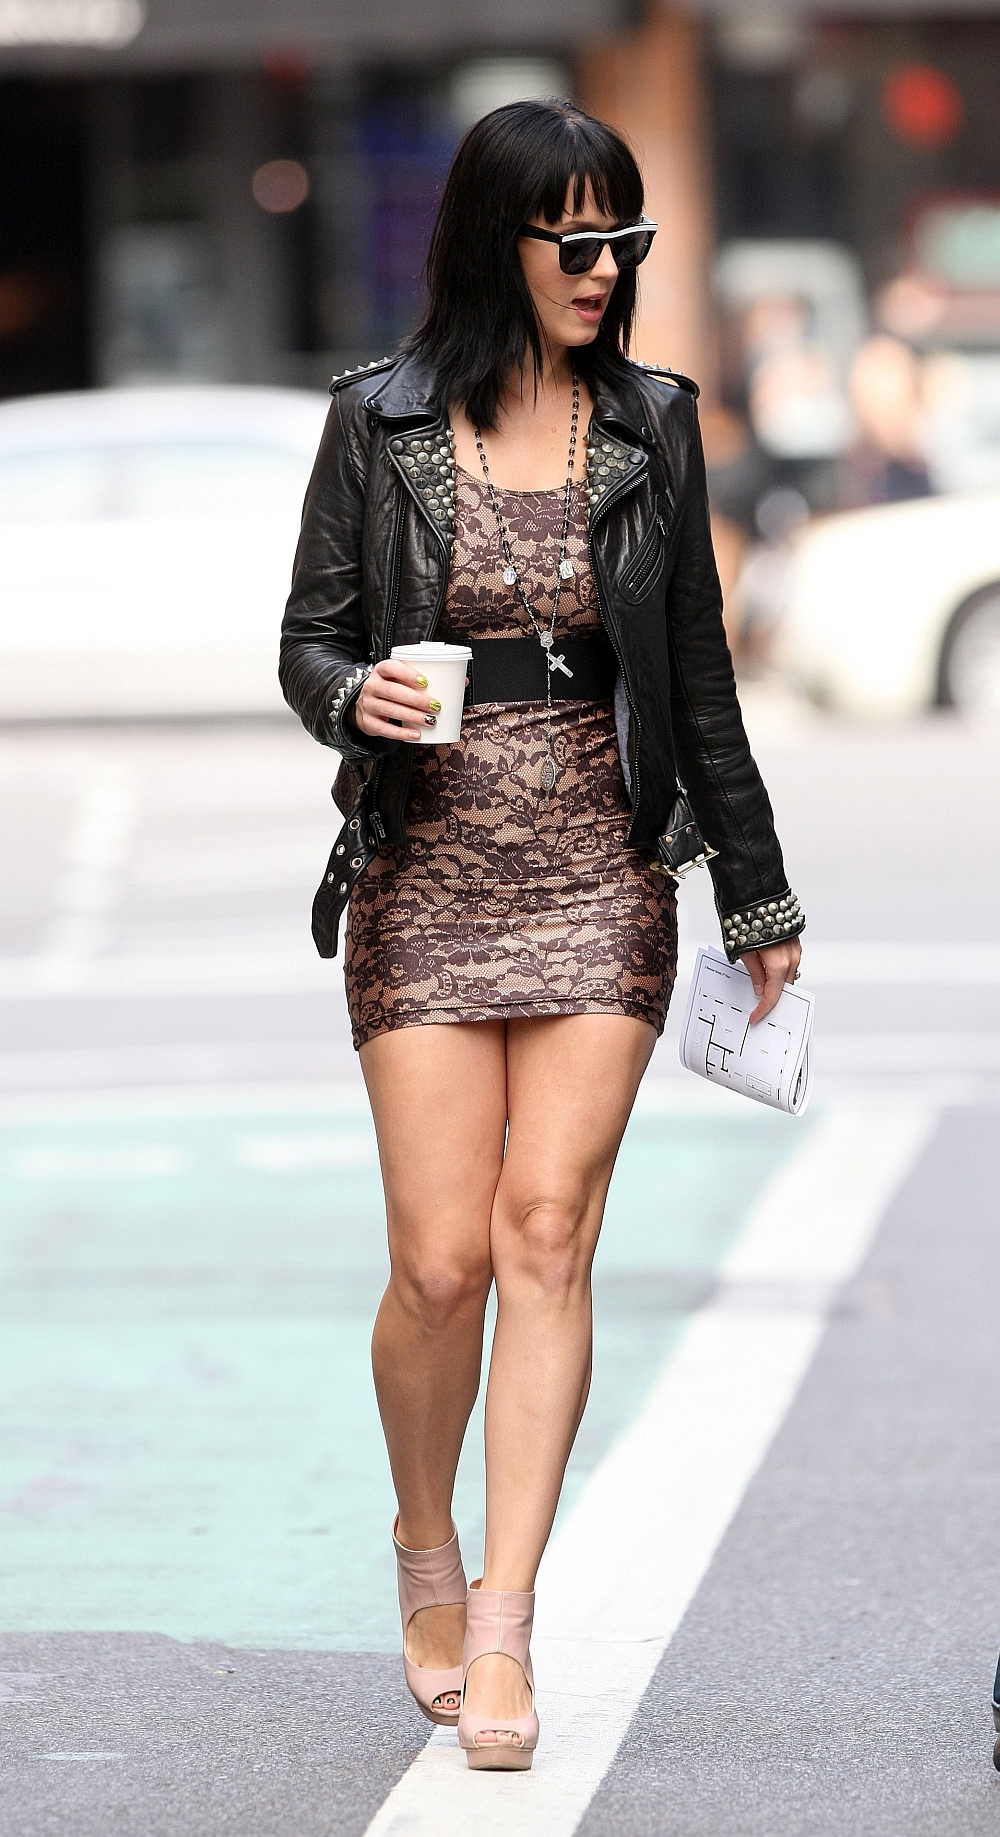 ... Katy Perry has hot legs in a mini dress and high heels